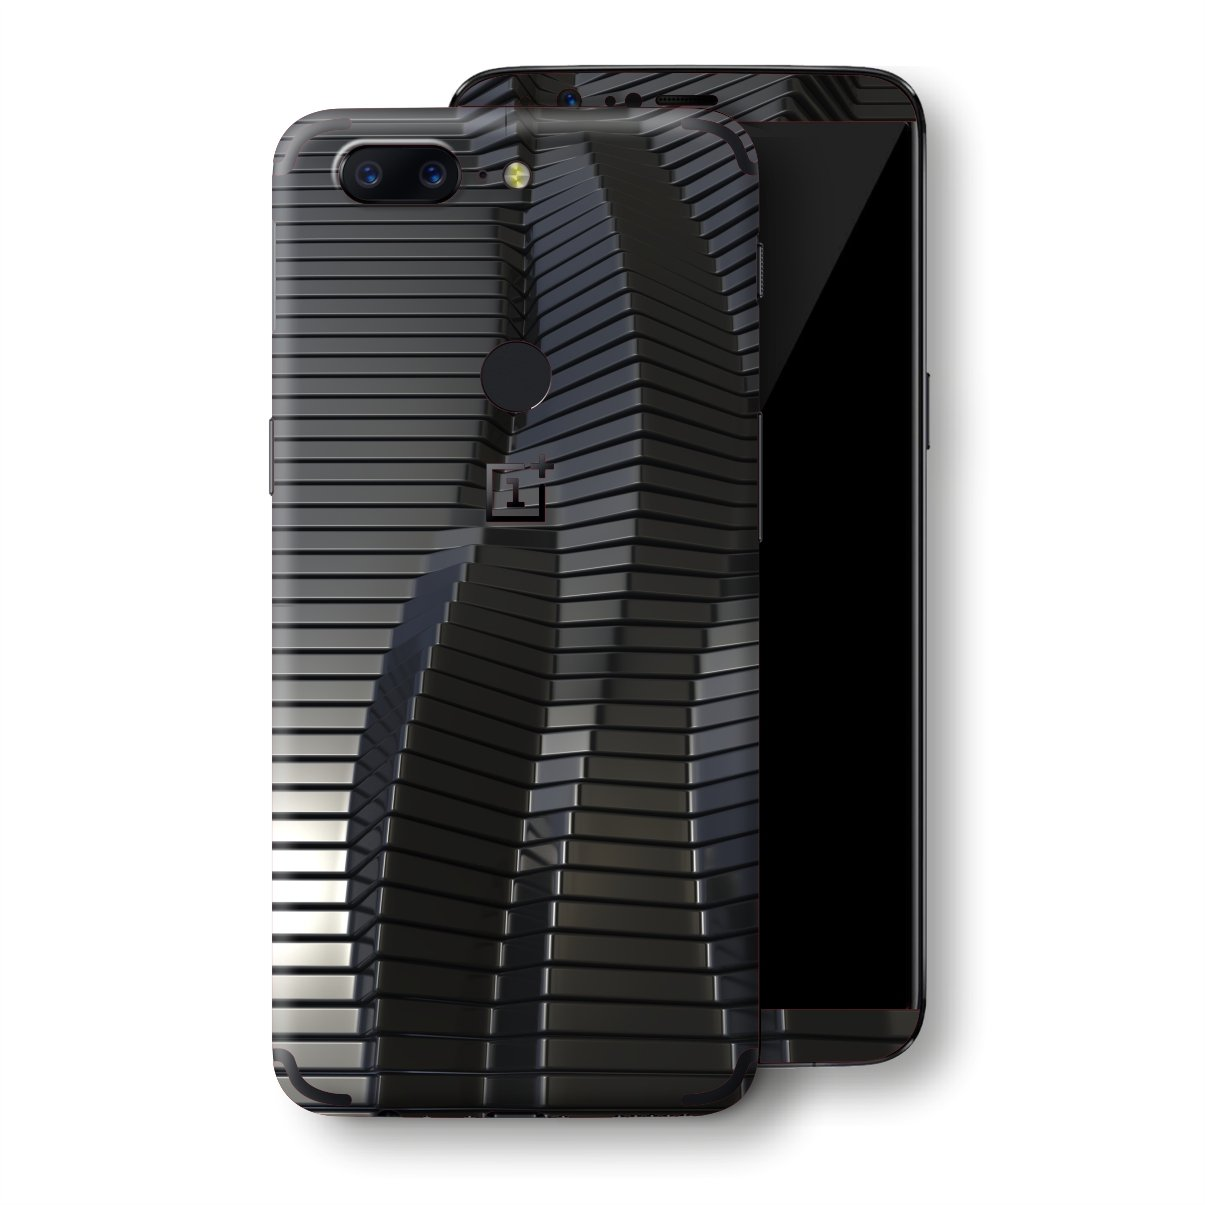 OnePlus 5T Black 3D Stripes Skin, Decal, Wrap, Protector, Cover by EasySkinz | EasySkinz.com